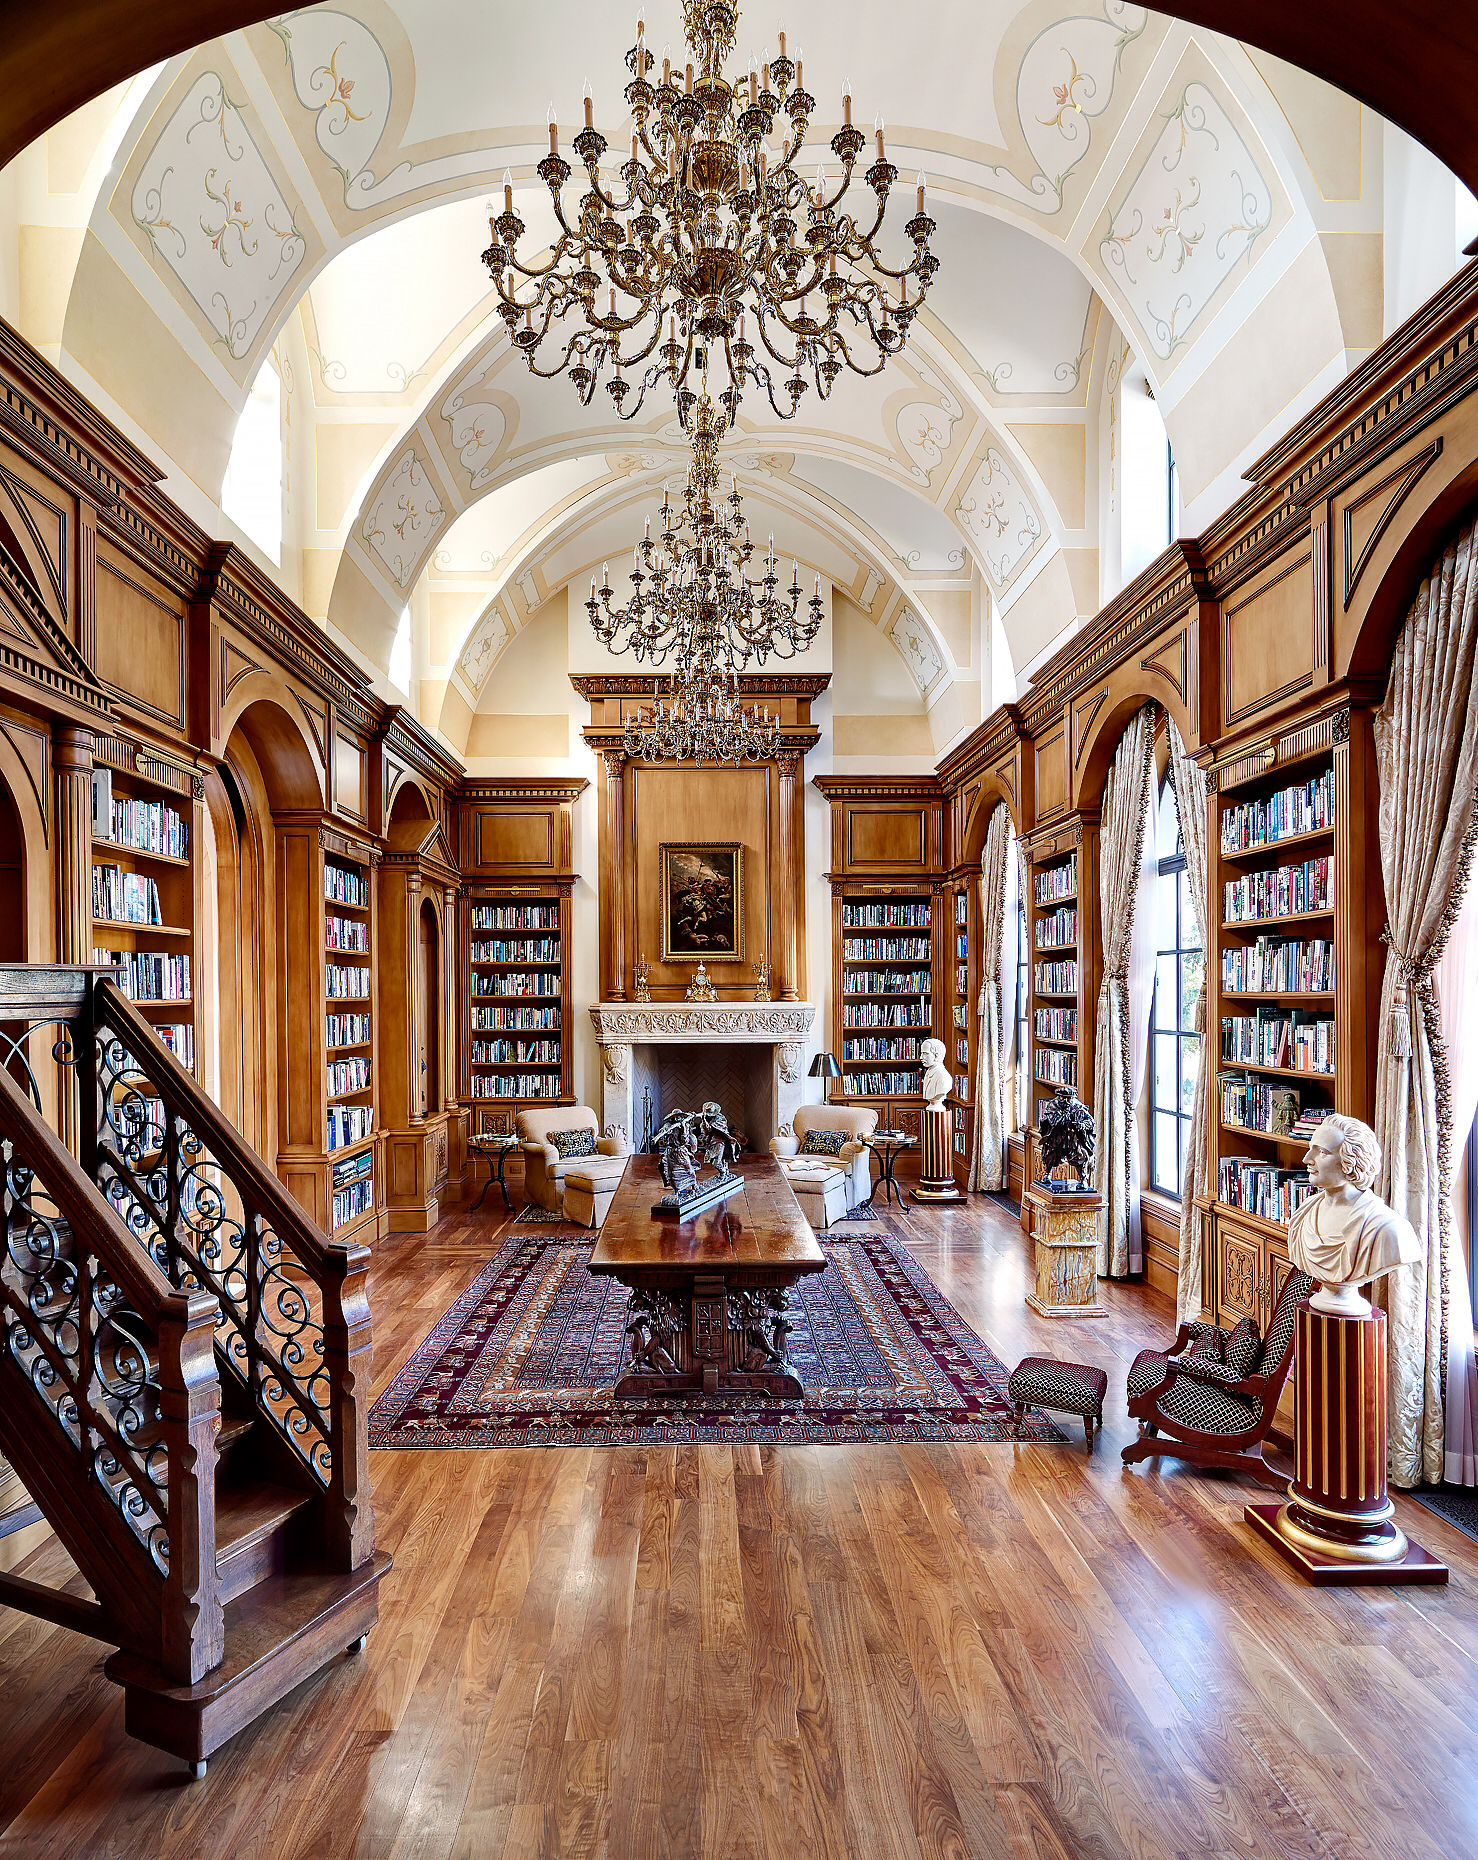 Gainesville Luxury Designer Home: Gorgeous Libraries To Inspire Your Home Library